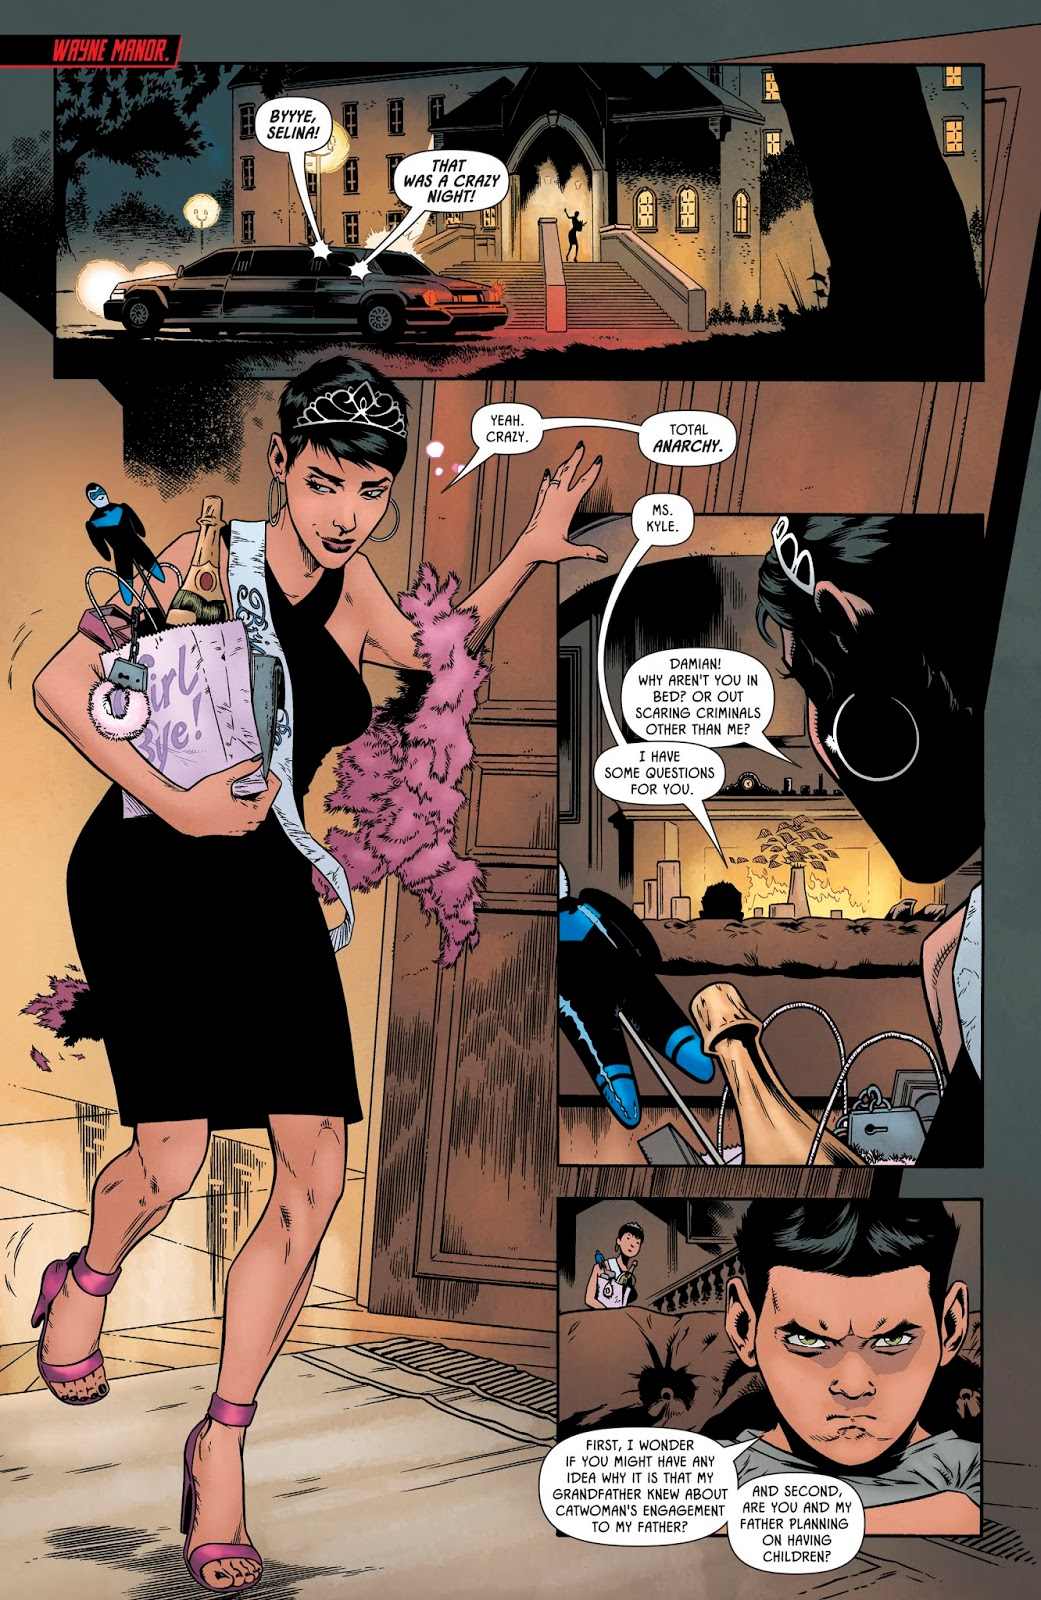 Why Catwoman Doesn't Want To Have Kids